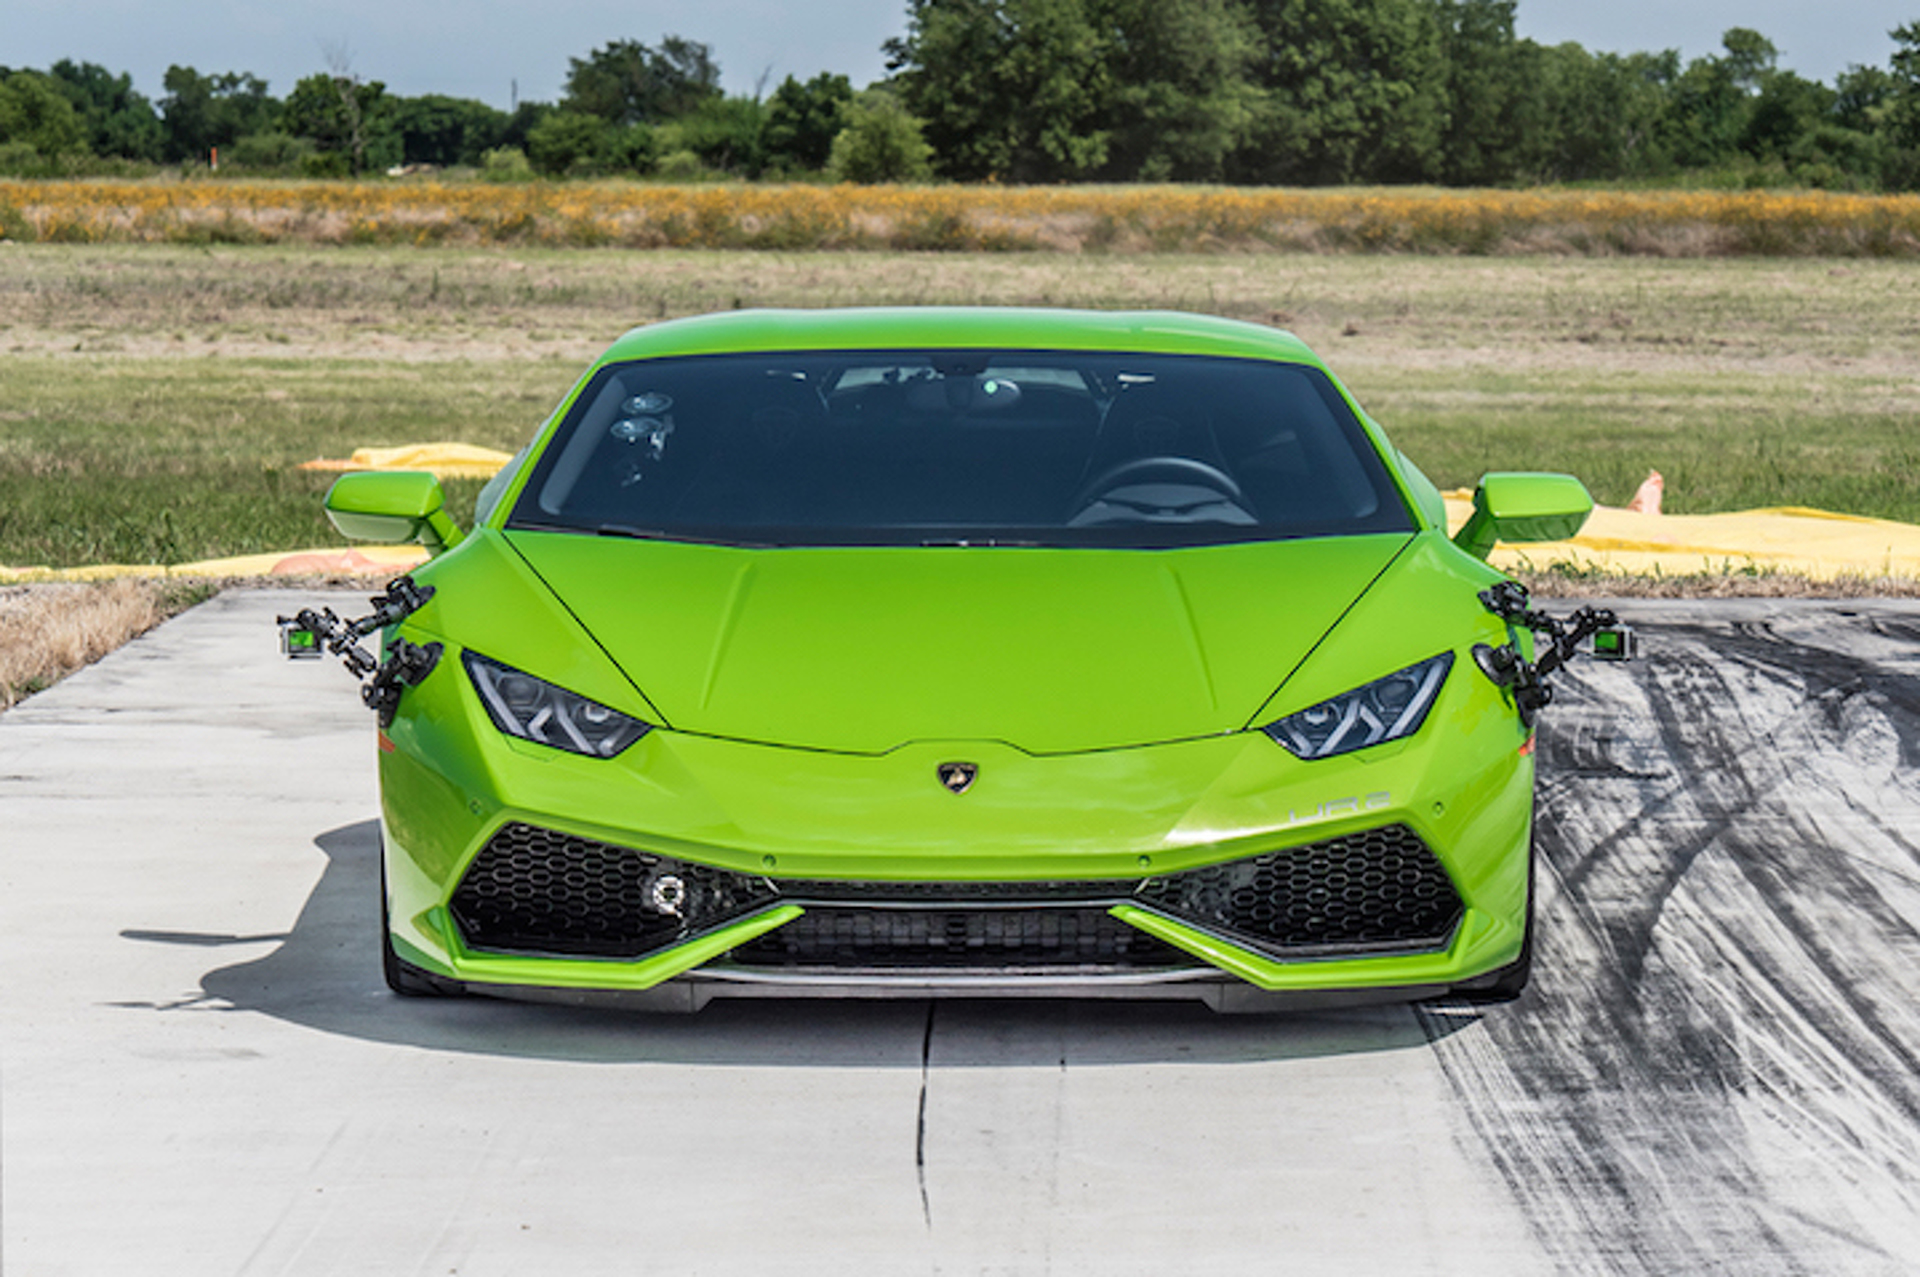 2,100-HP World Record Lamborghini Huracan Hits the Used Market